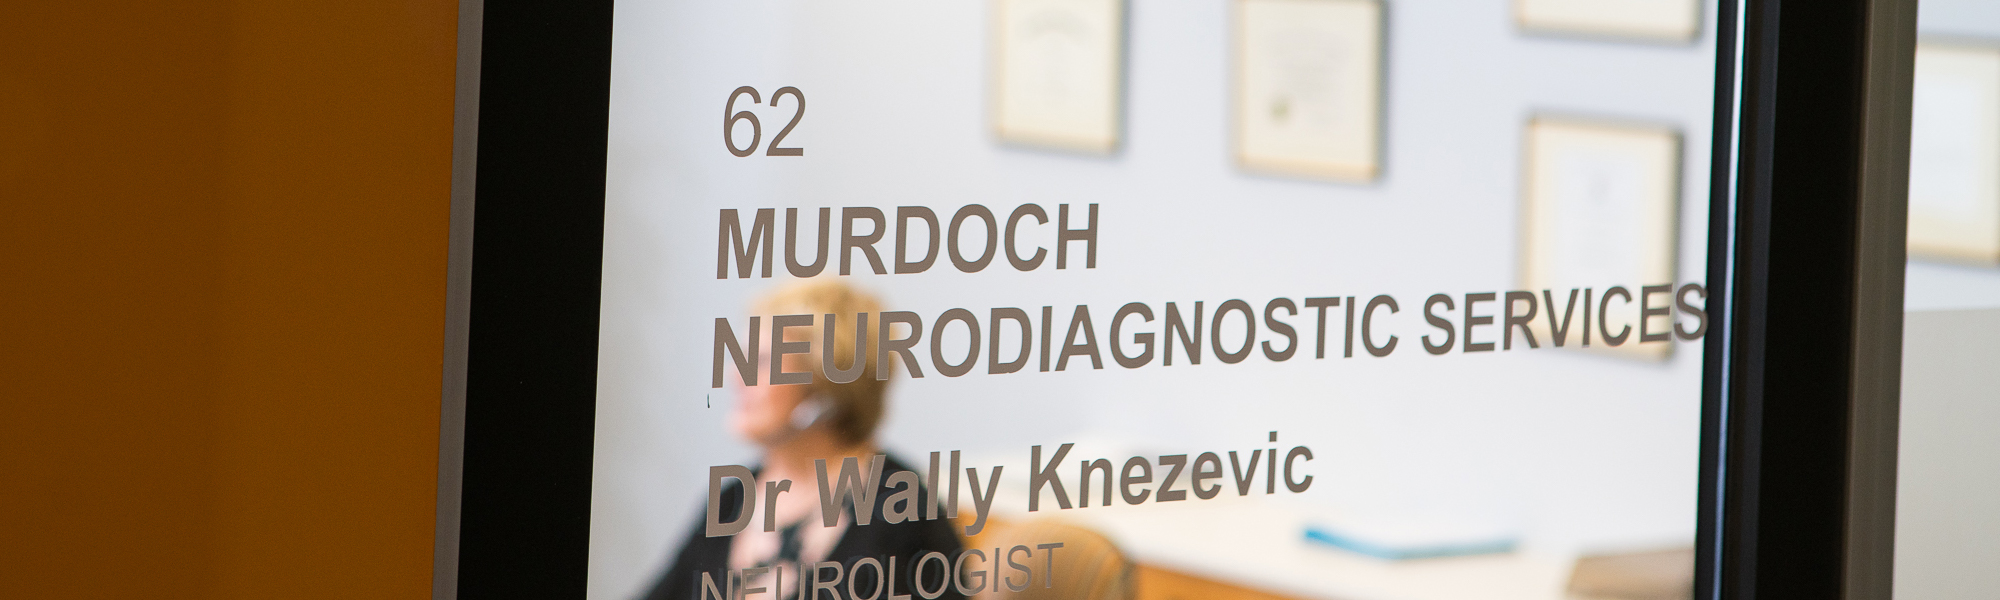 We're located in the Murdoch Medical Clinic at St John of God Murdoch Hospital   Find Us